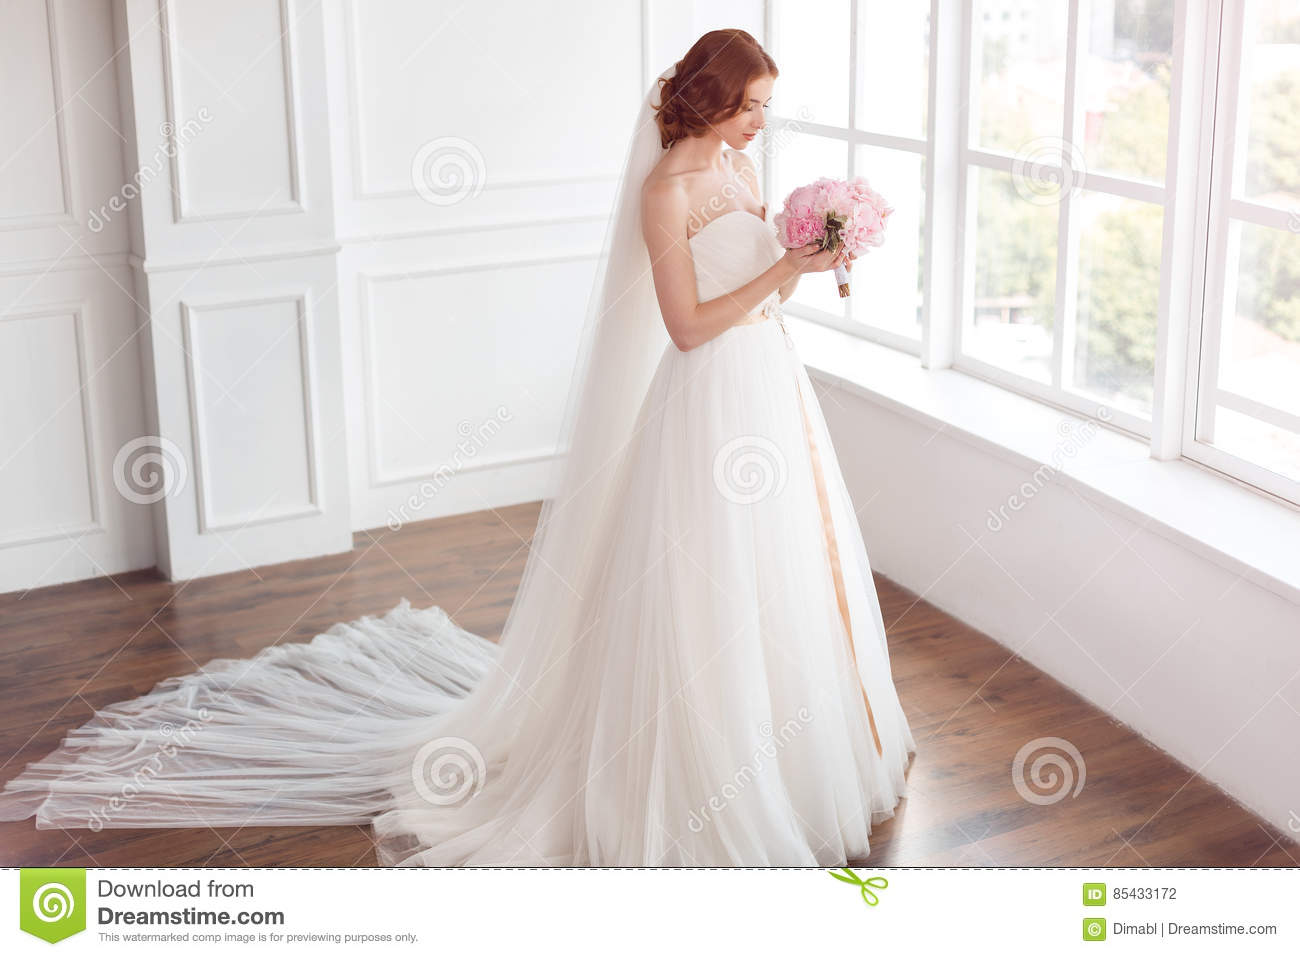 Bride in white wedding dress and long veil with bouquet of flowers